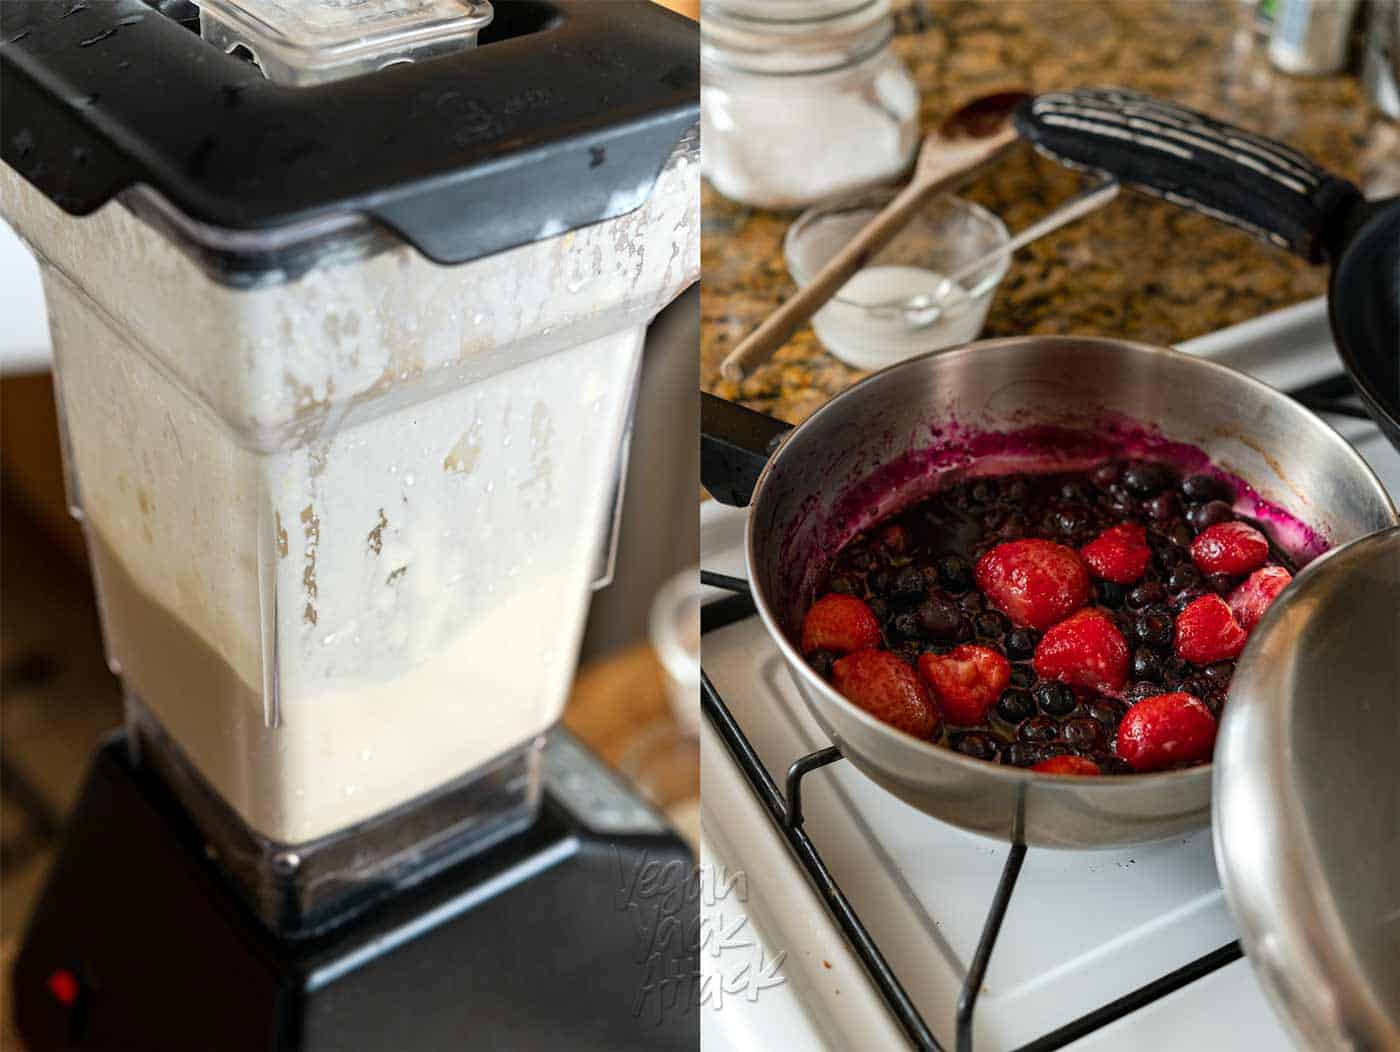 Image collage of blender processing batter and berry topping in a sauce pan